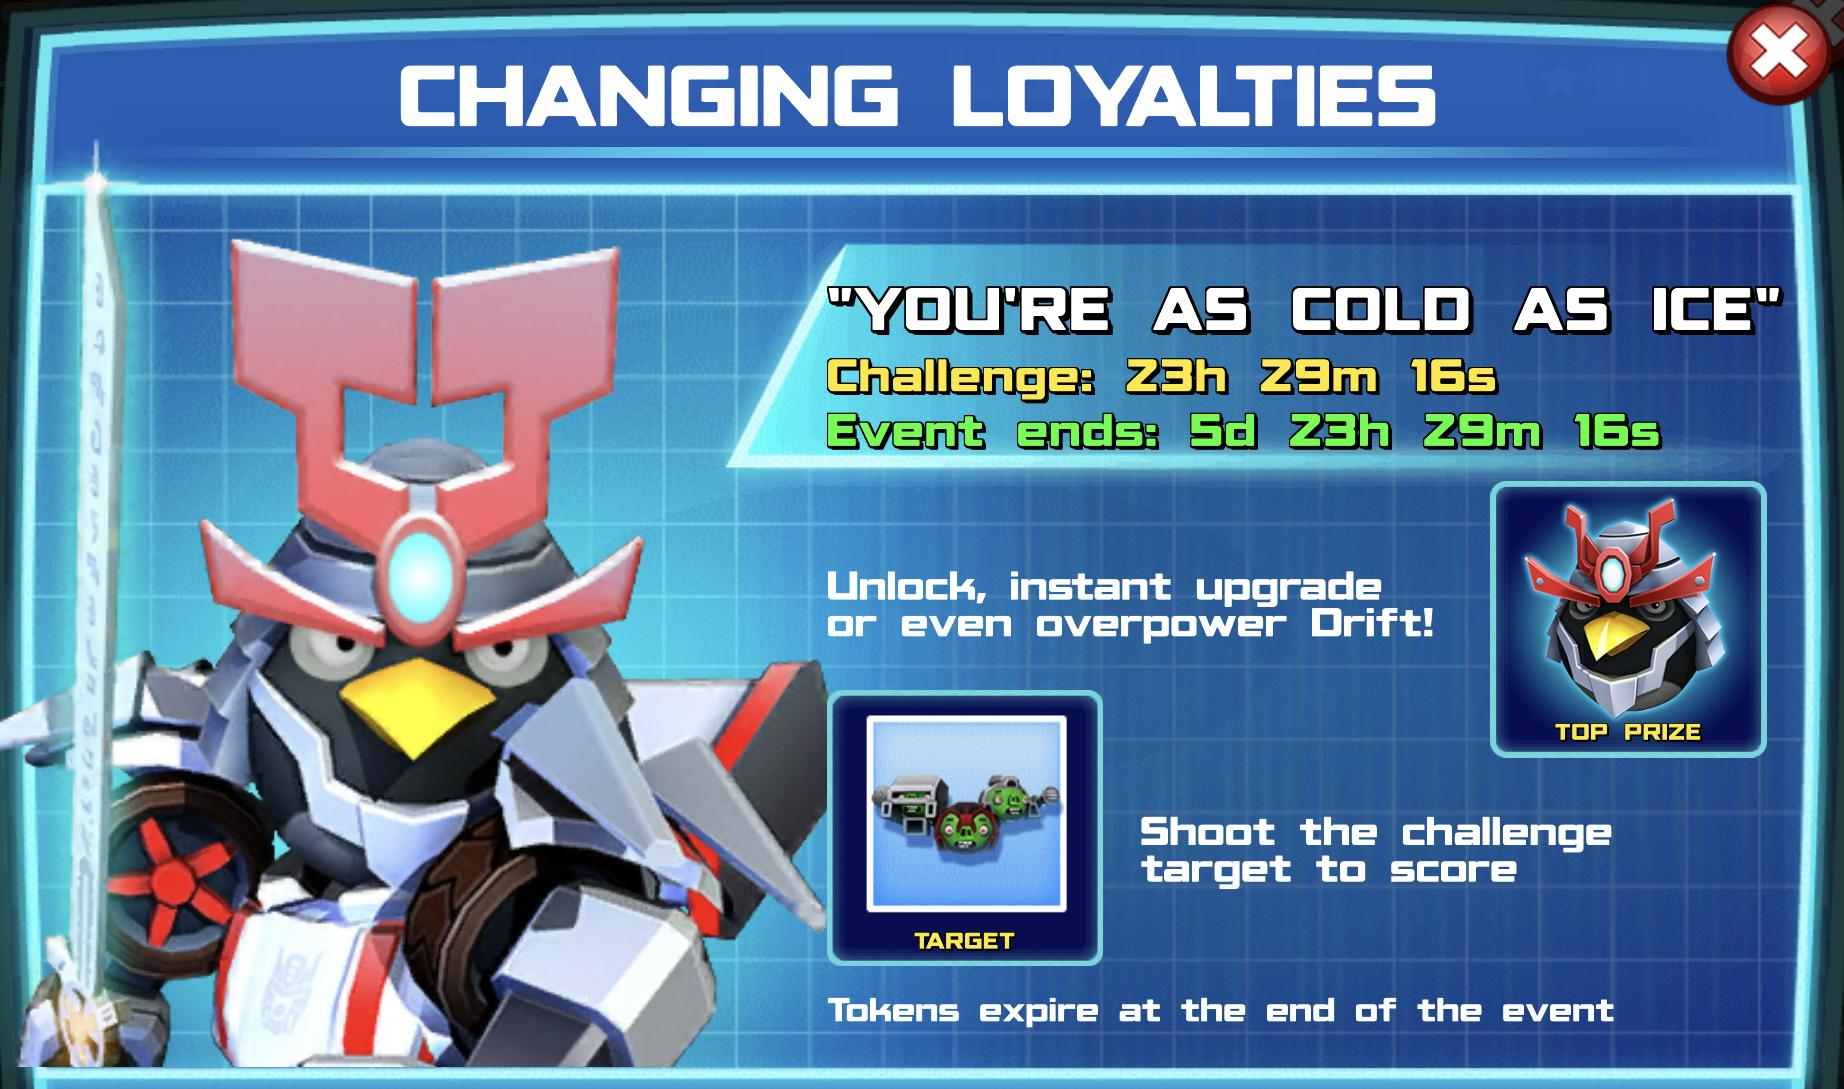 Event Banner for Changing Loyalties